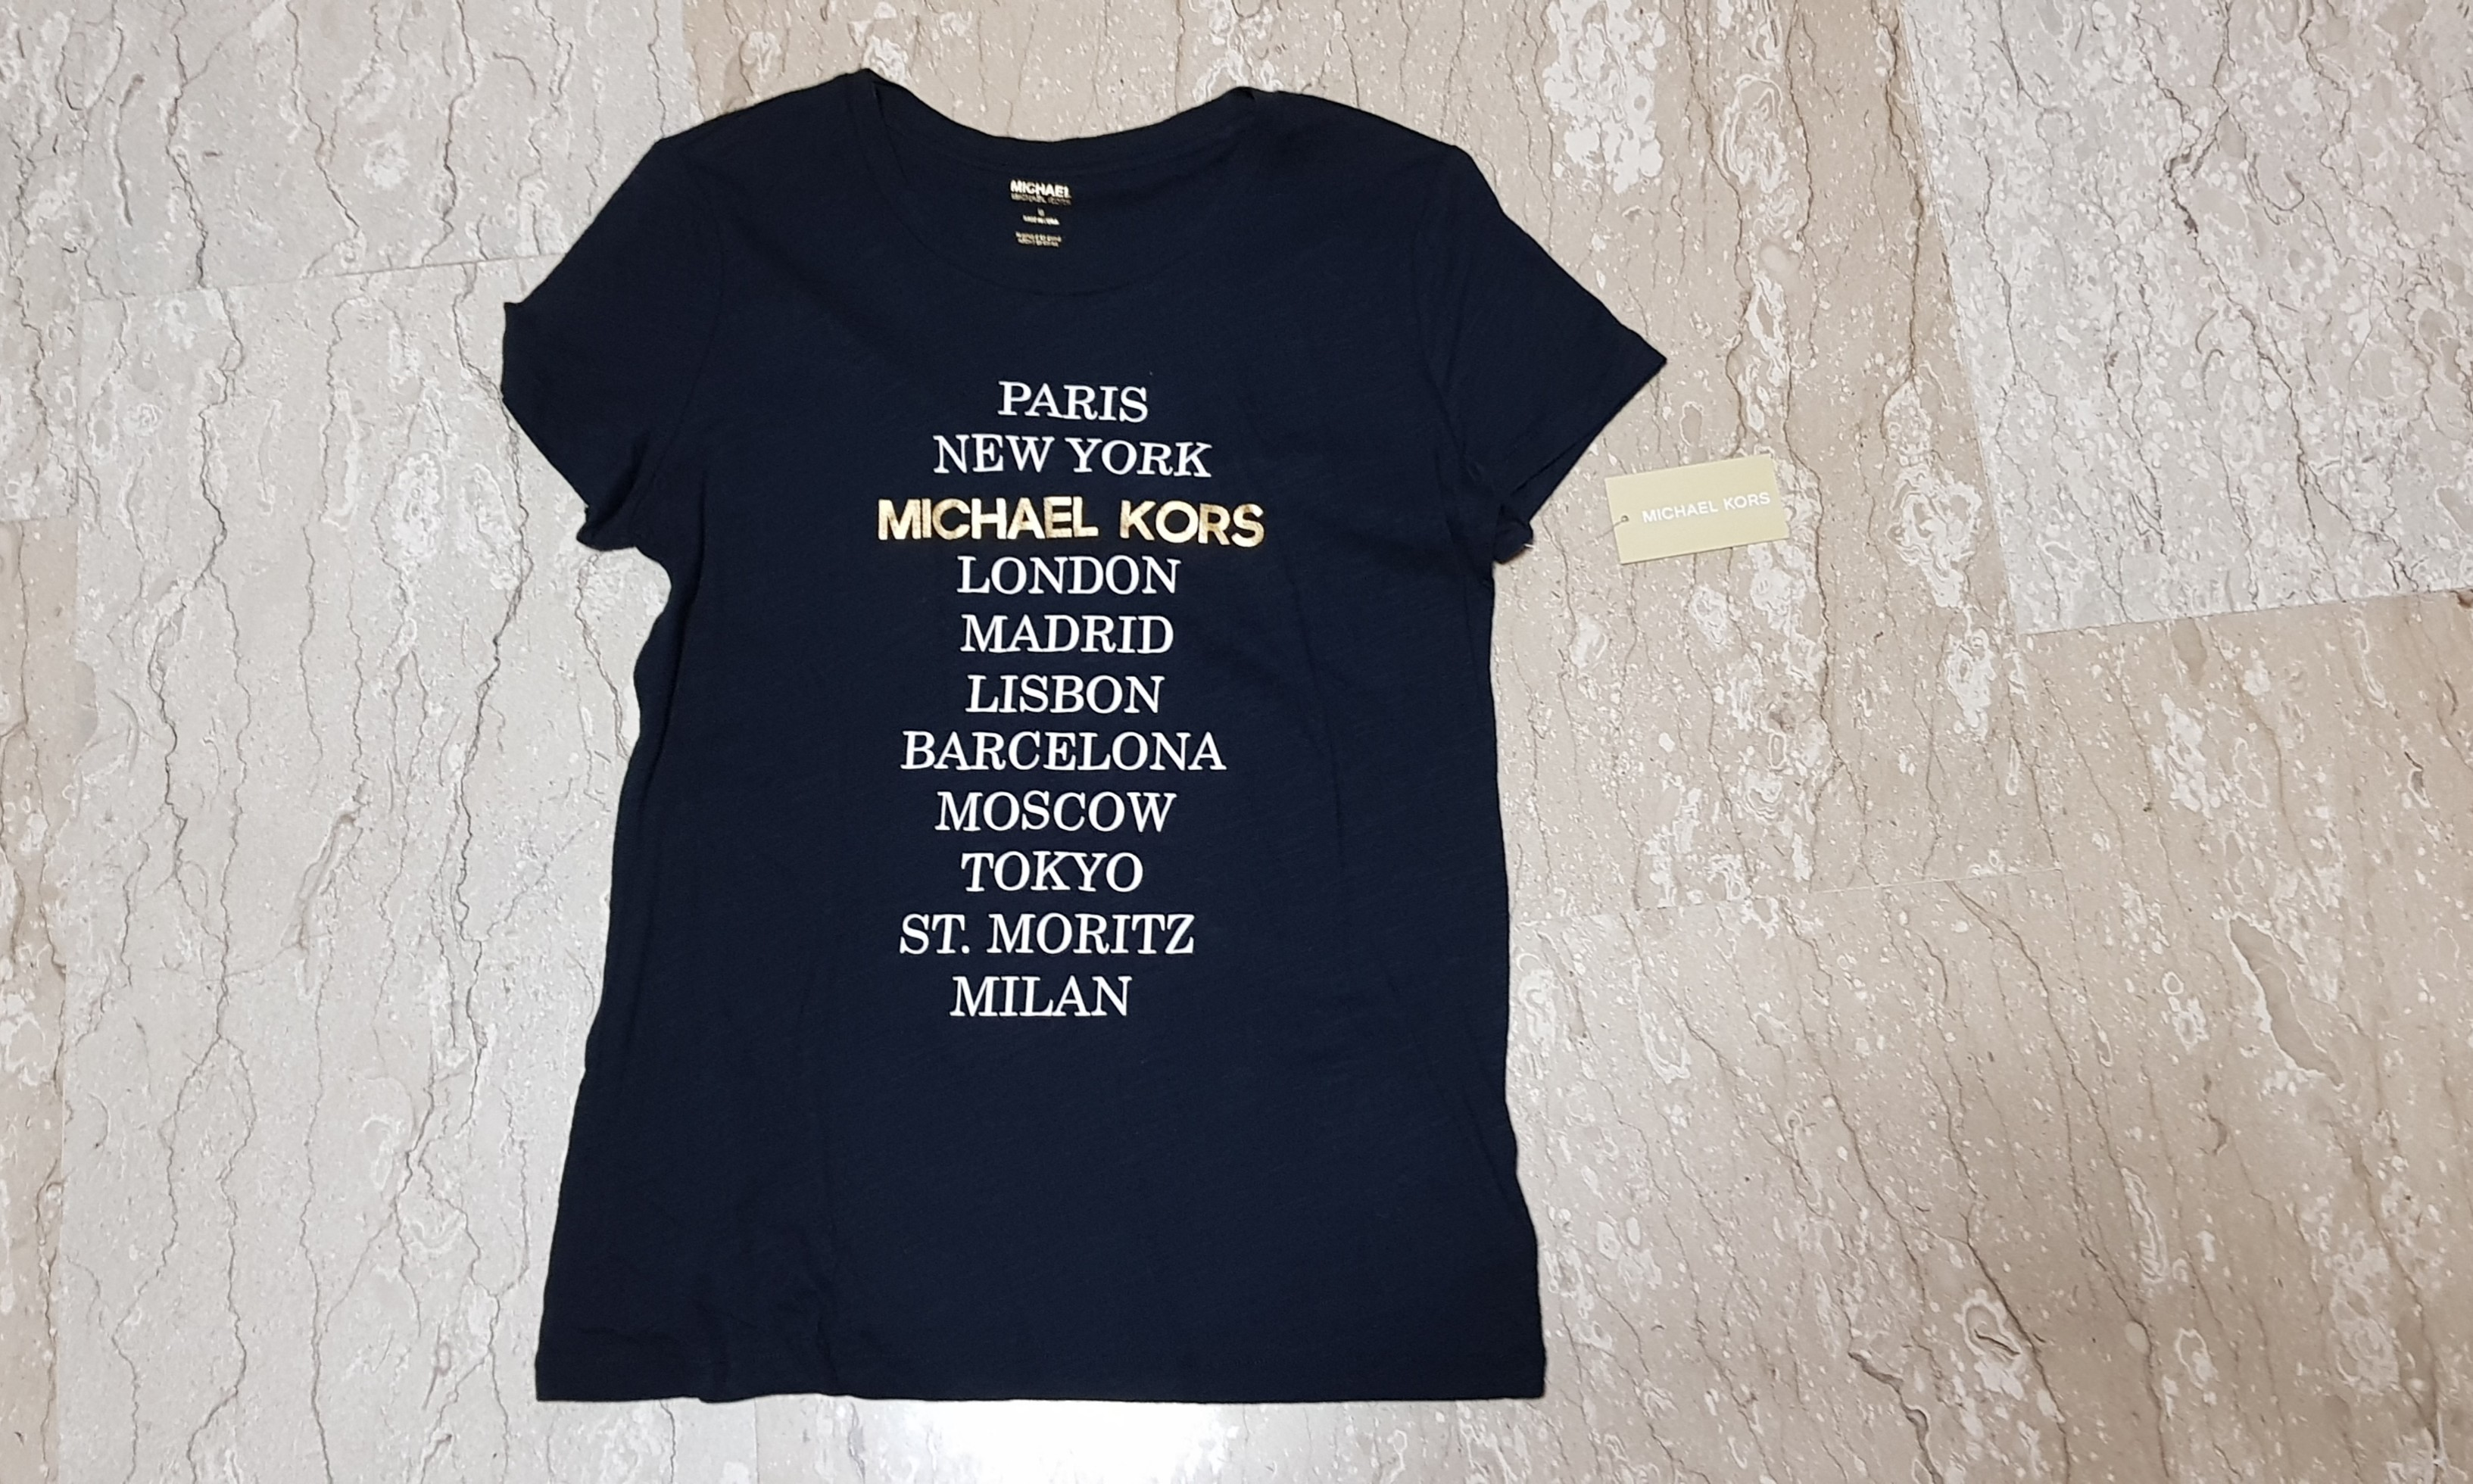 874e1d76 Michael Kors T-shirt, Women's Fashion, Clothes, Tops on Carousell